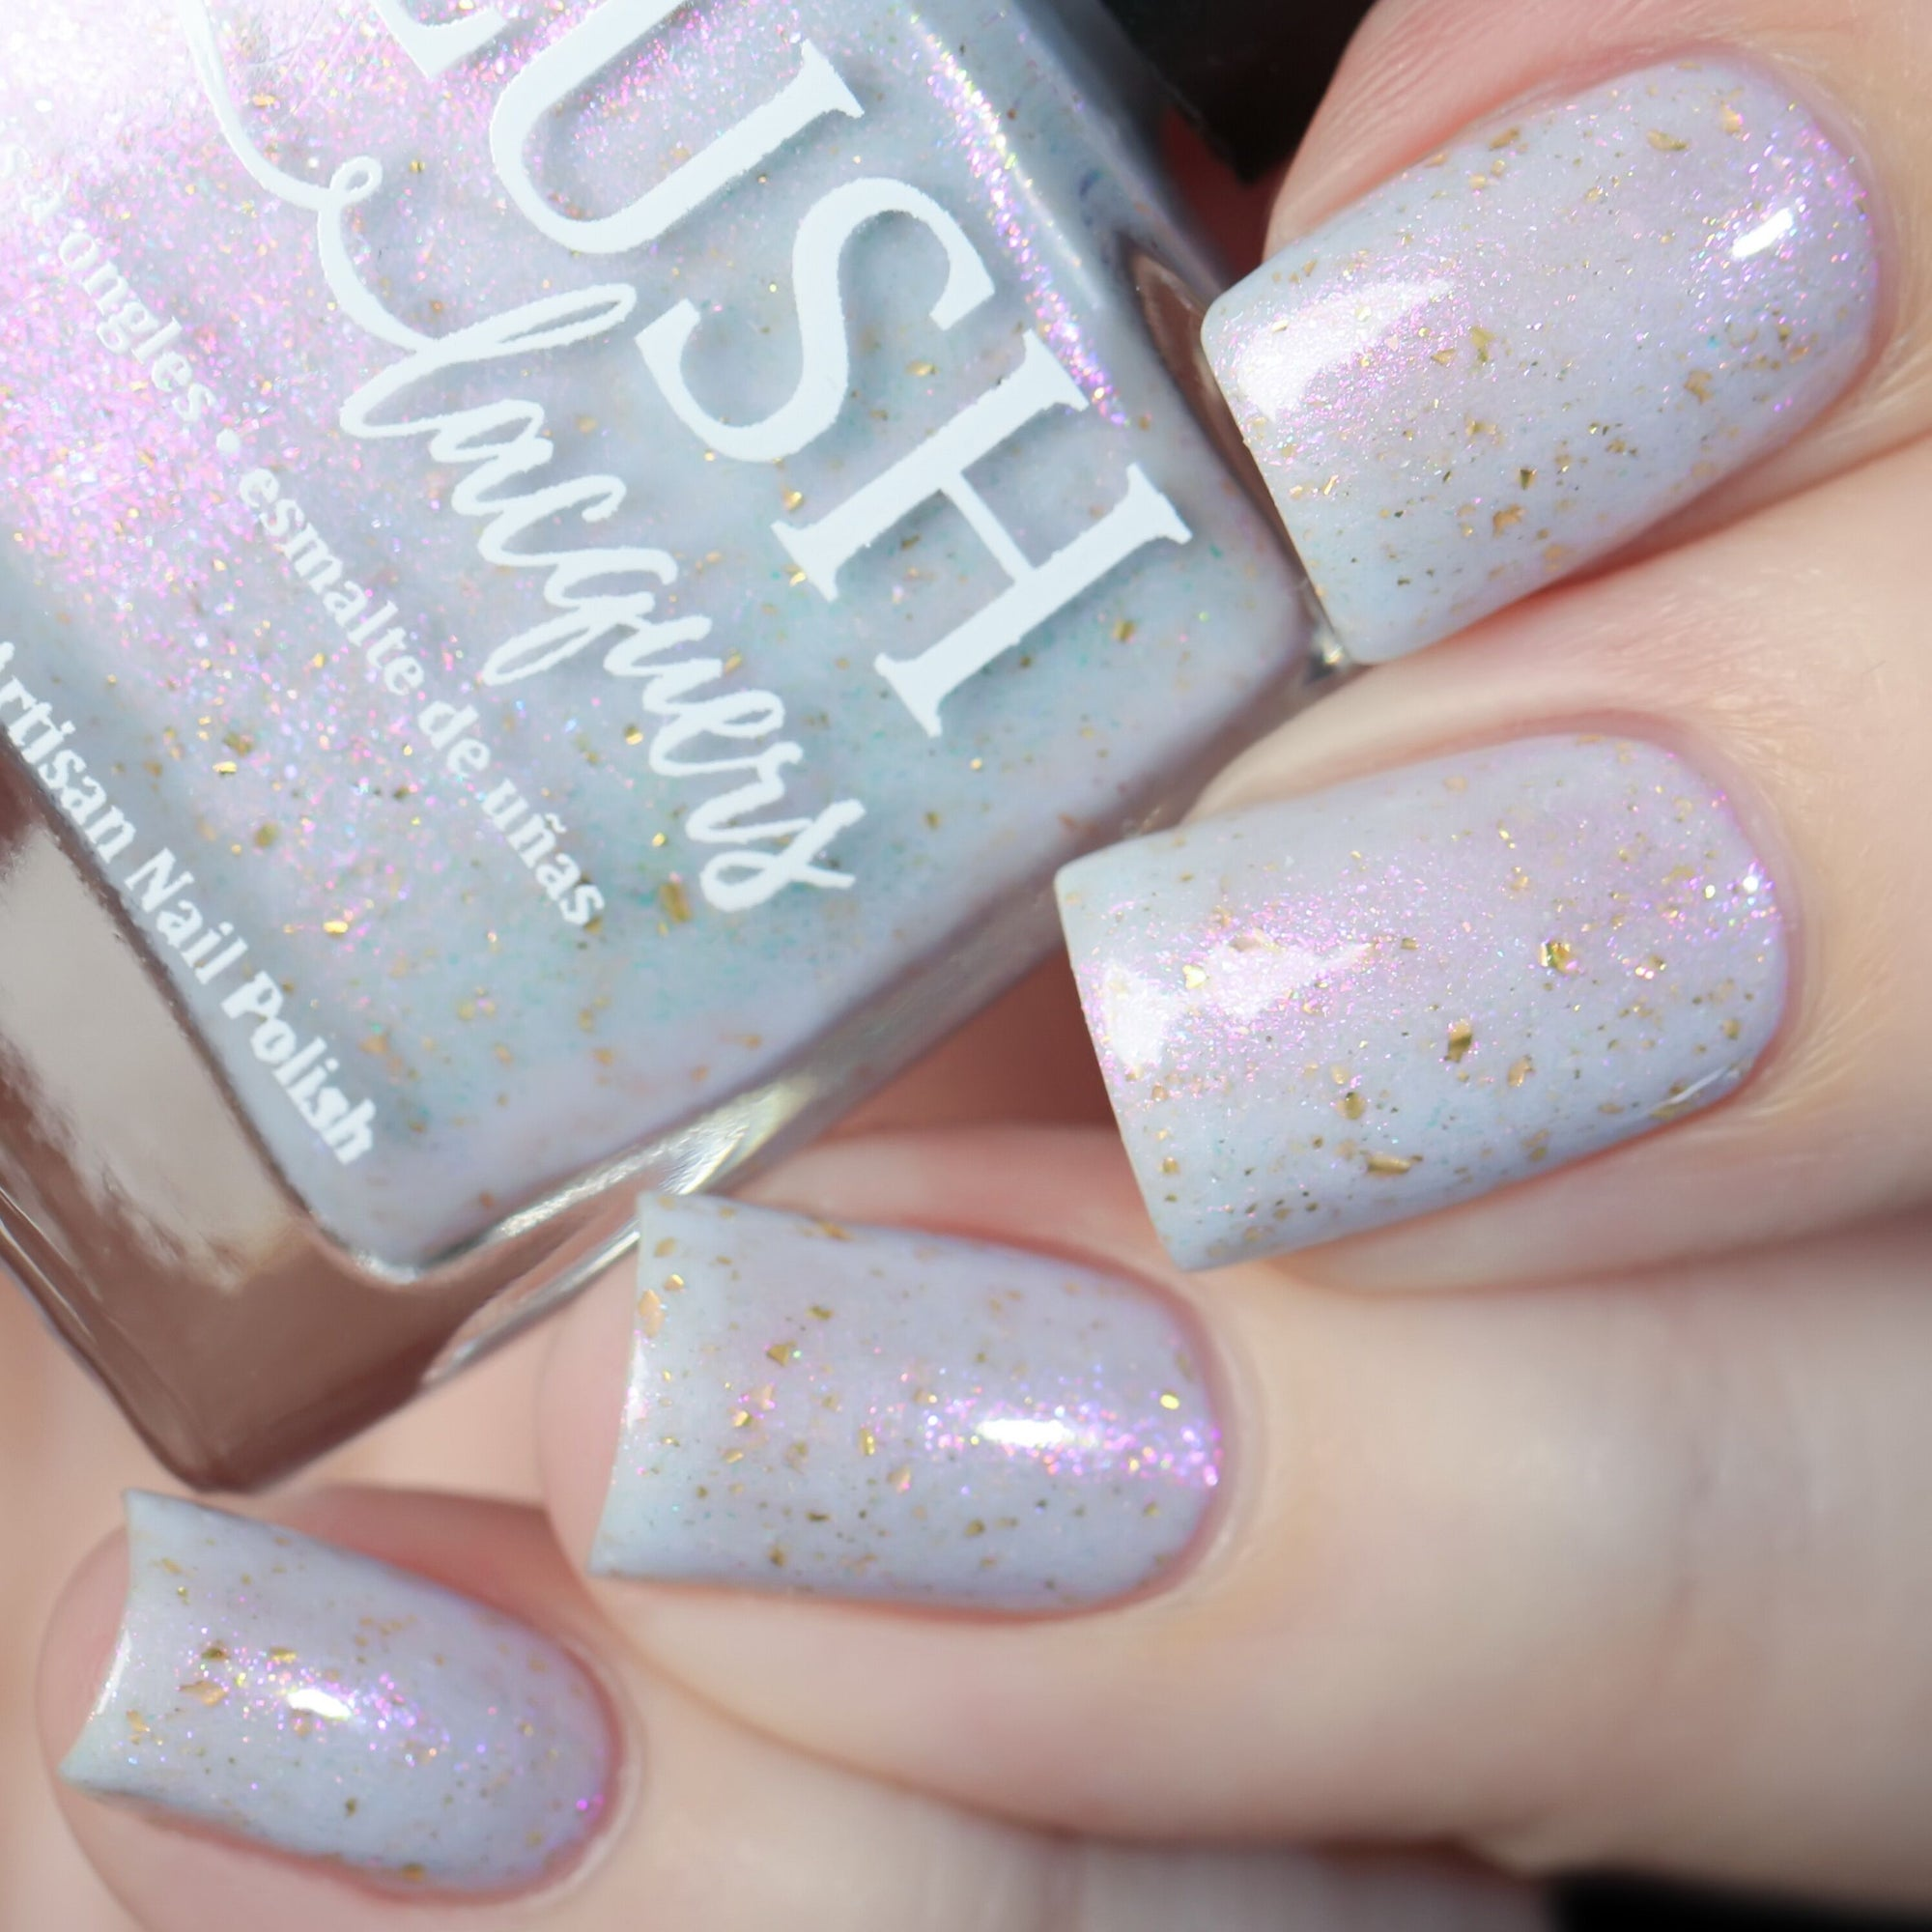 Blush Lacquers - Silver Lining